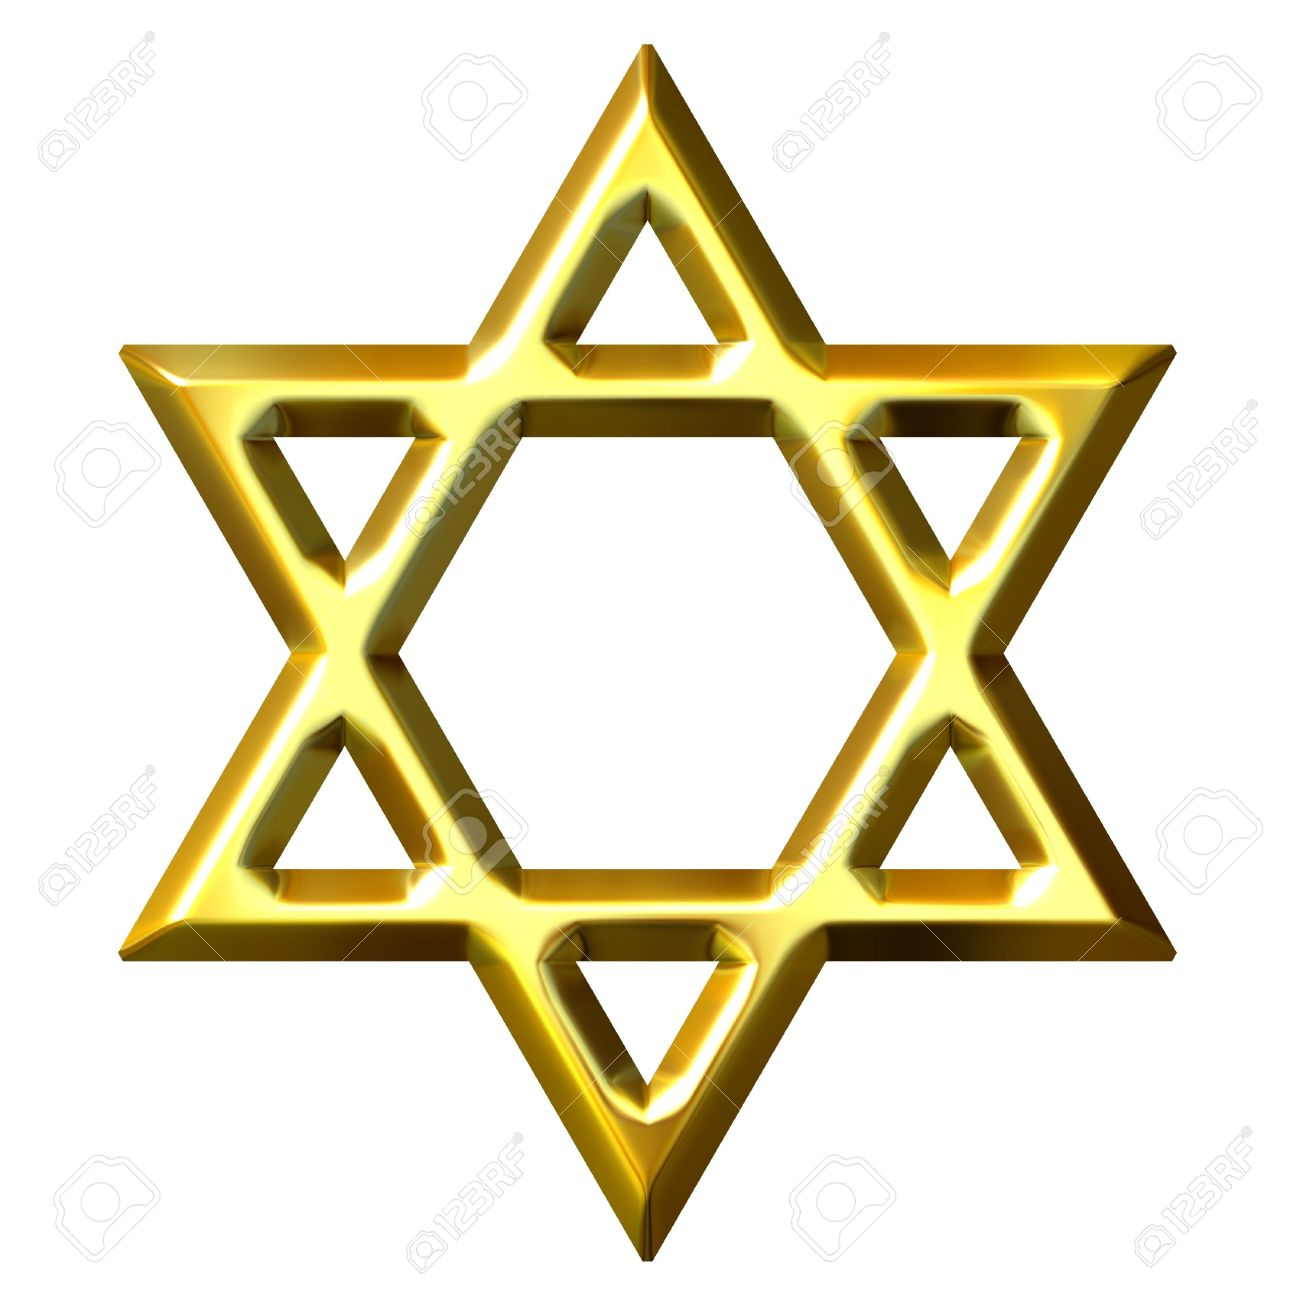 3d golden star of david stock photo picture and royalty free image rh 123rf com Christmas Star Clip Art free clipart images star of david